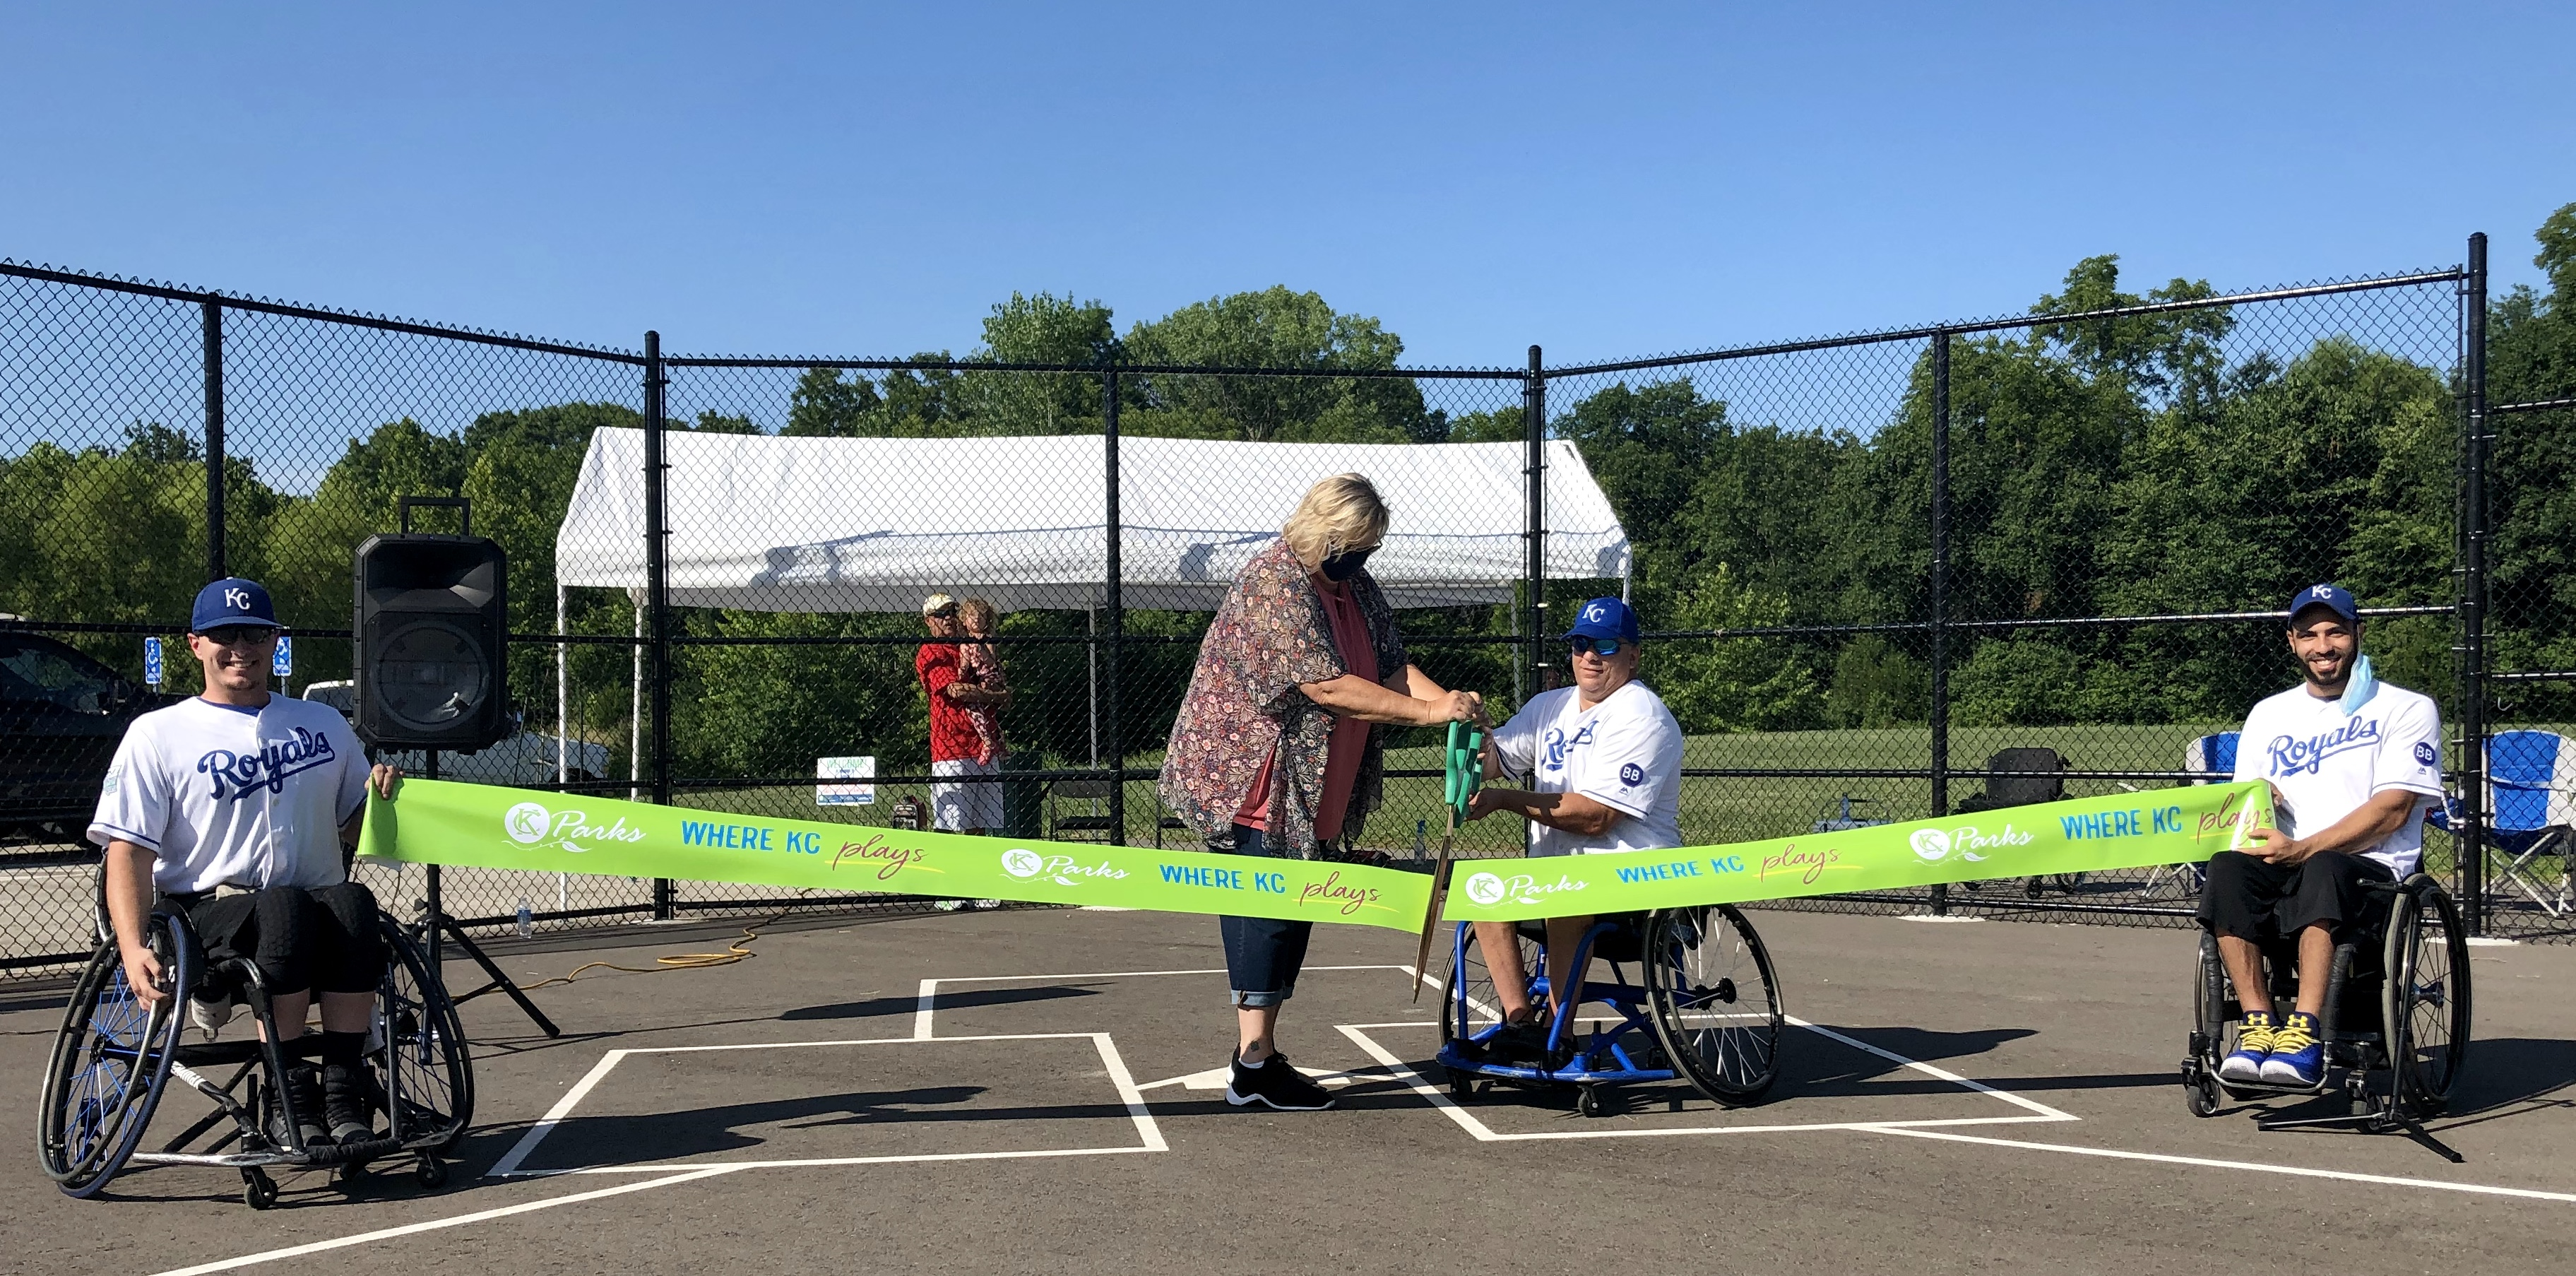 {NEWS} KC Parks Opens Area's First Wheelchair Softball Field in Pleasant Valley Park